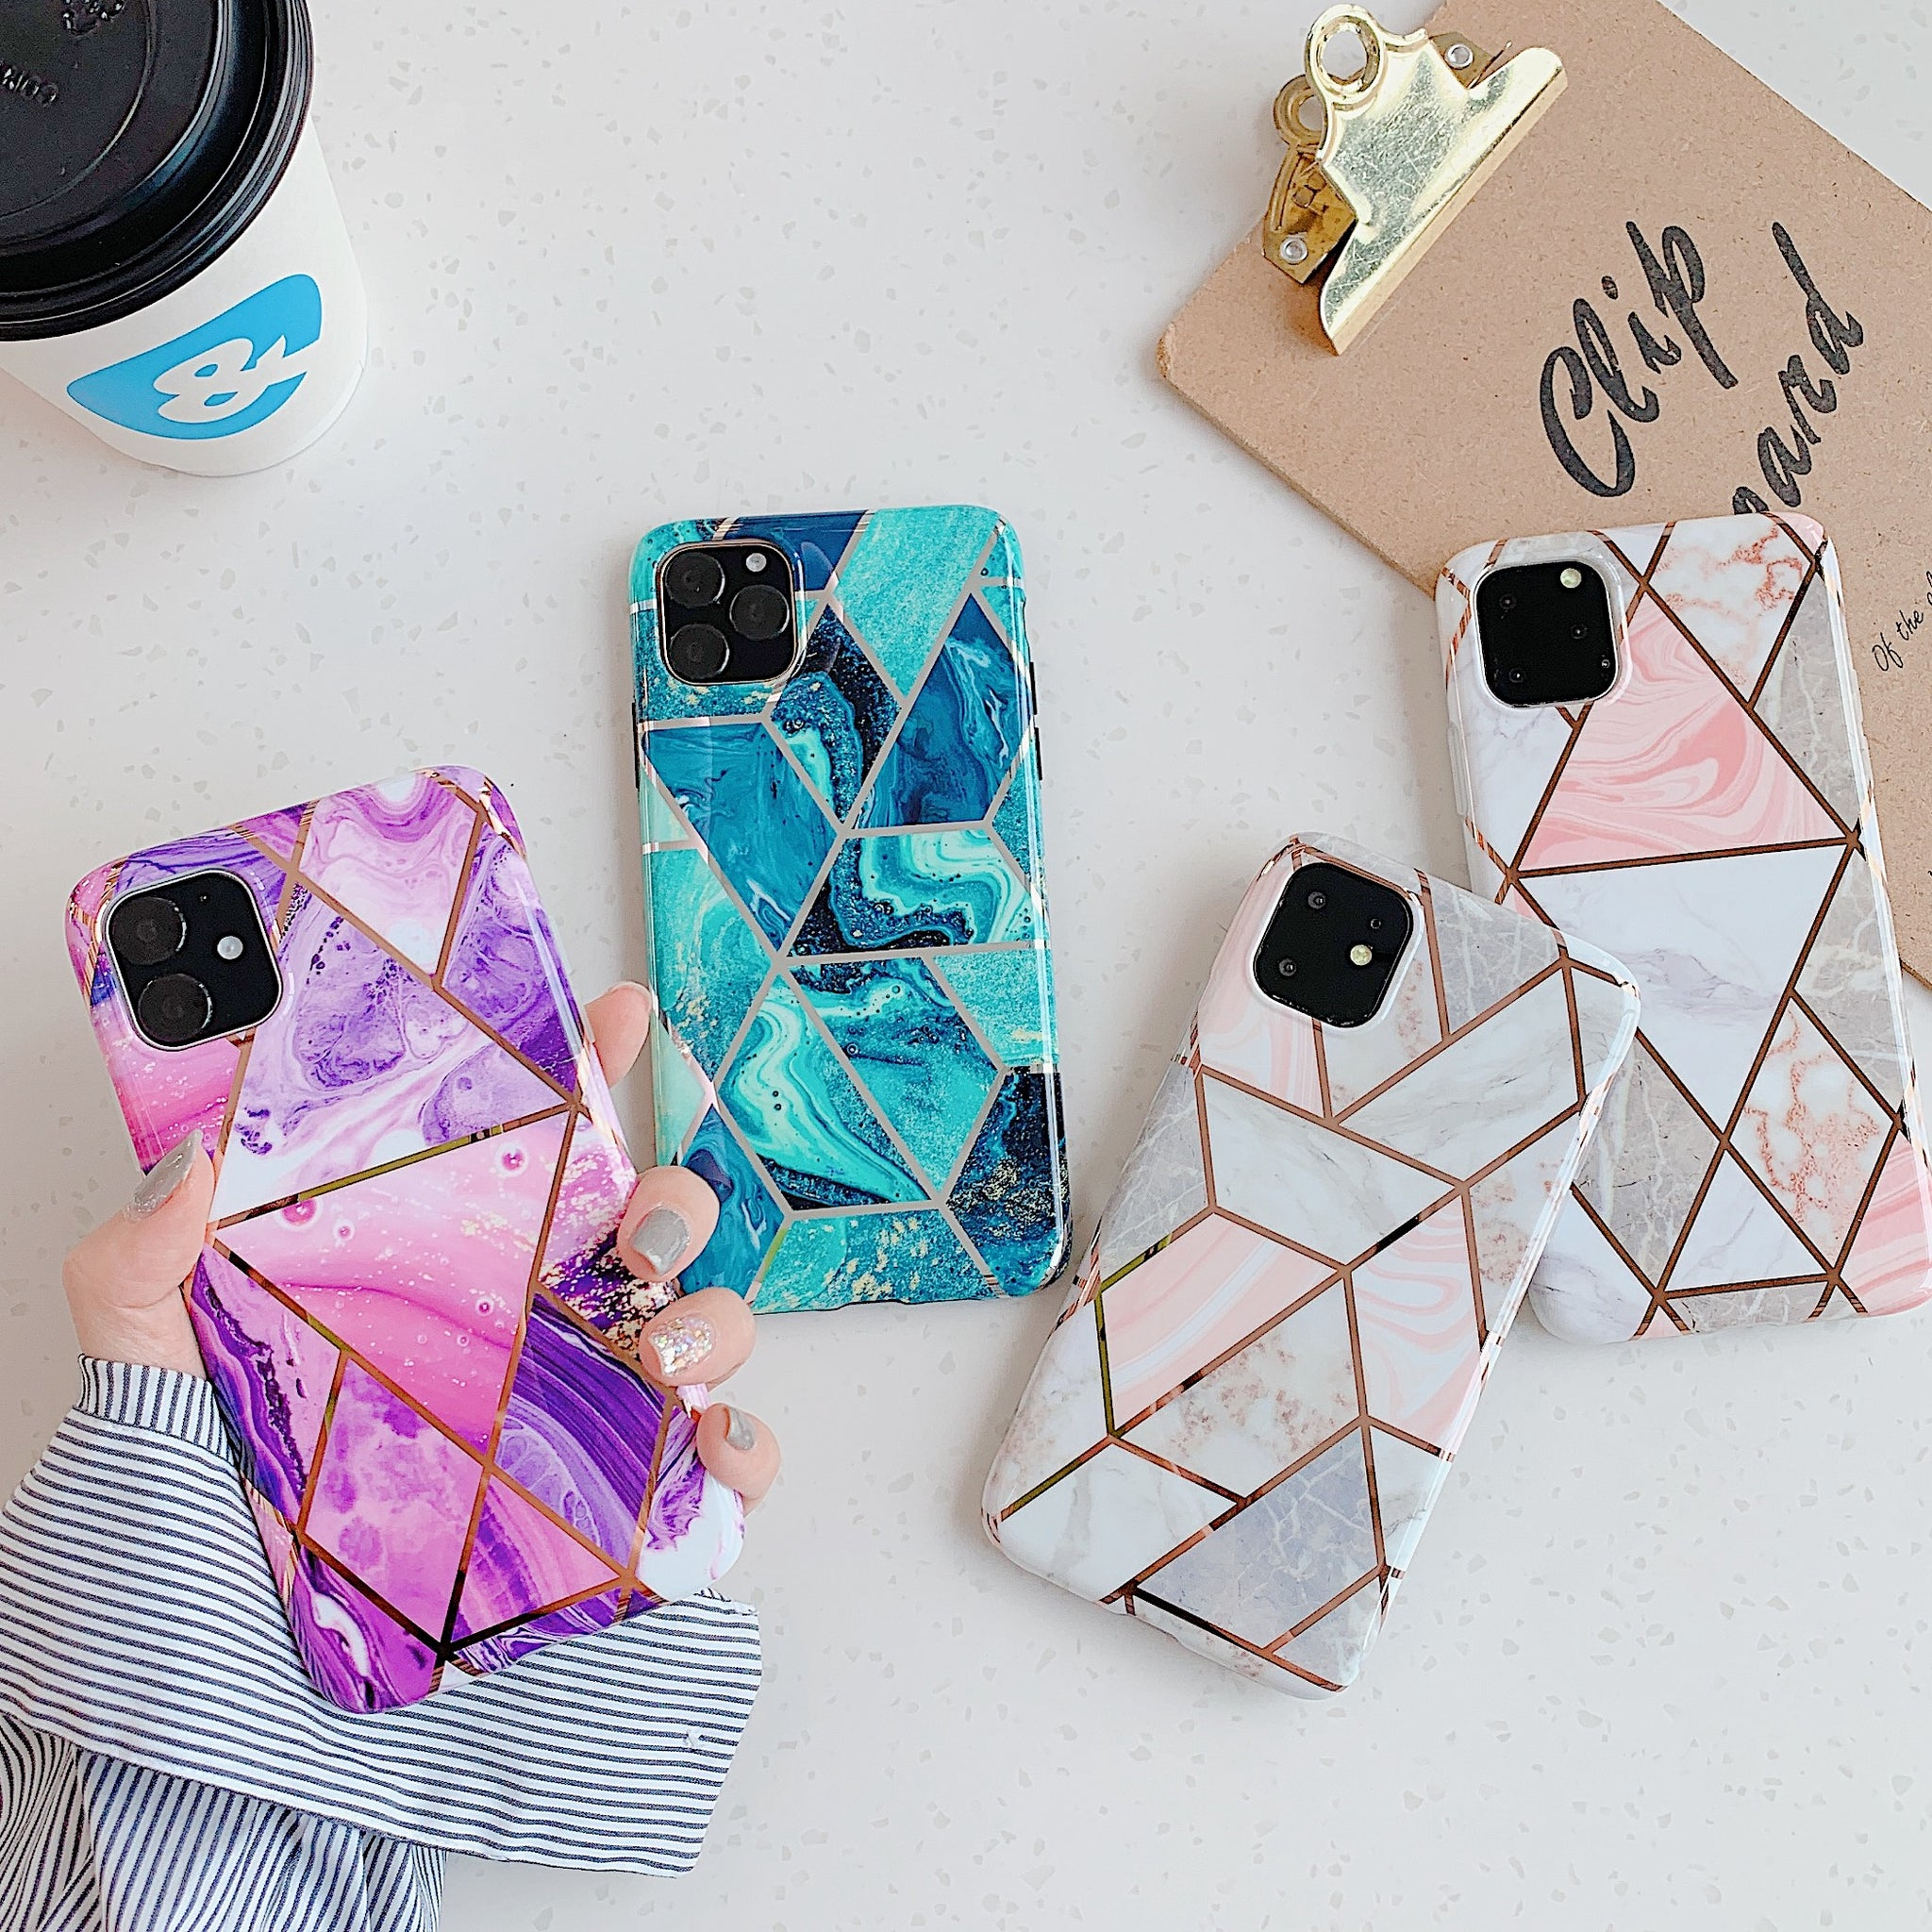 iPhone XI 11 Pro Max Case Soft TPU Case Marble Shockproof Silicone Gel Cover